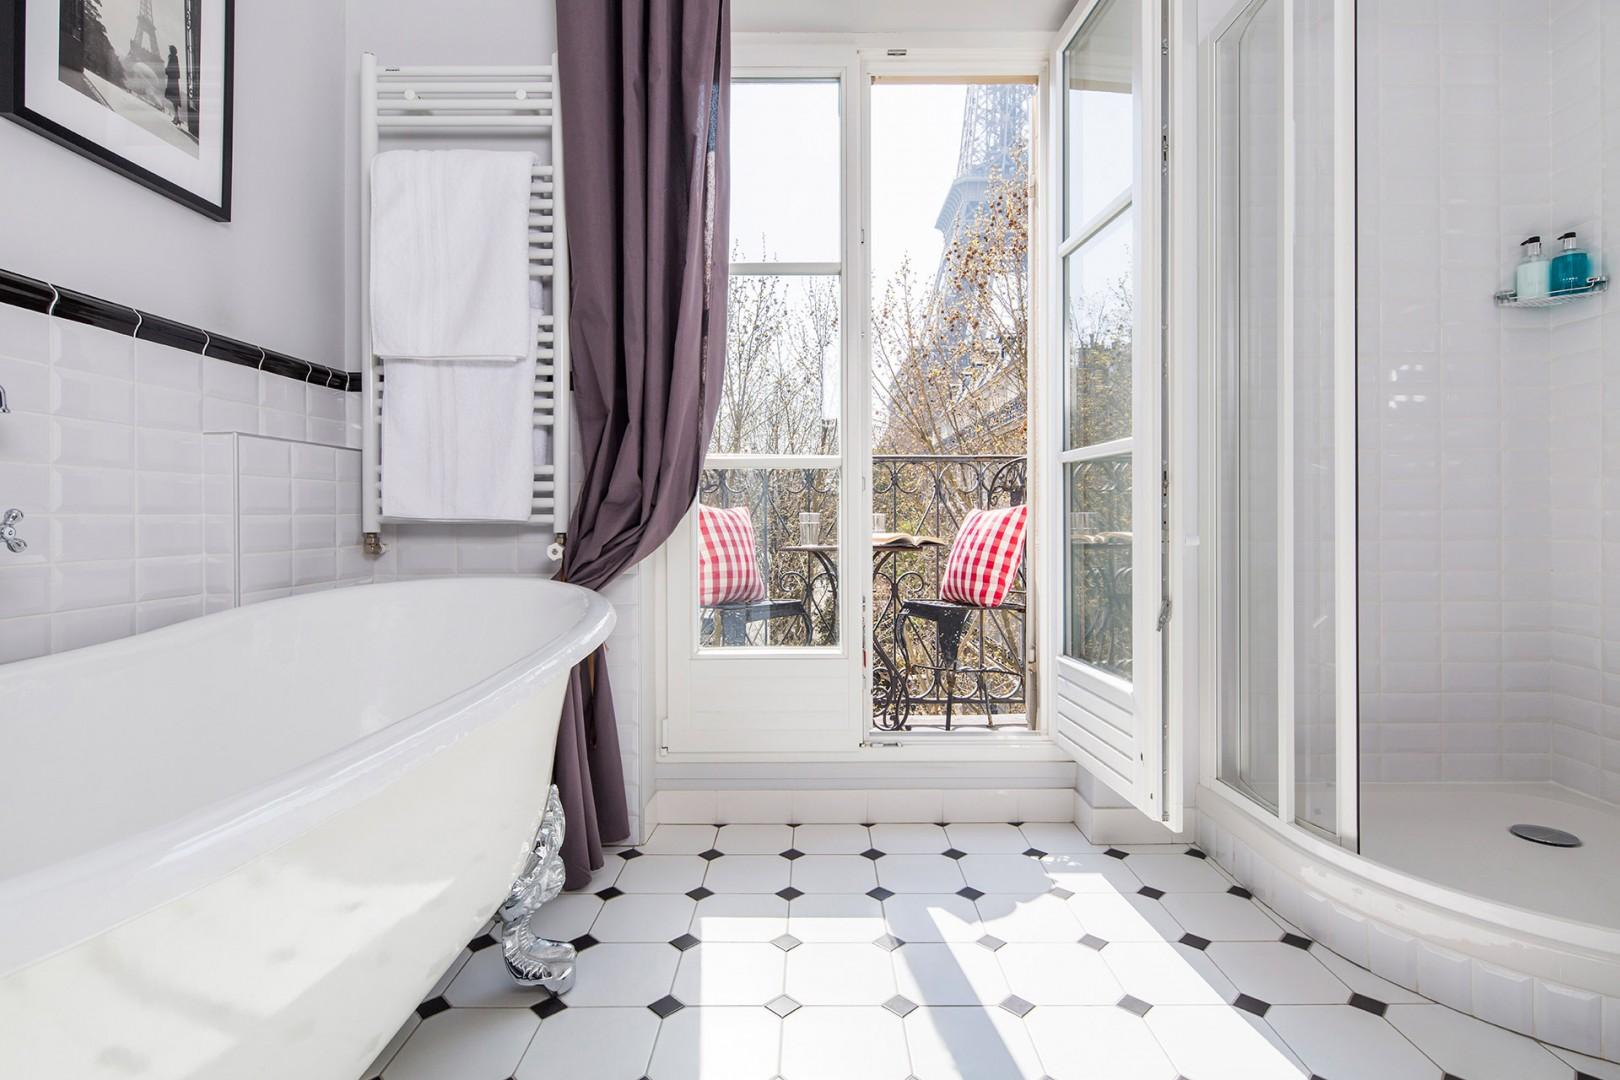 Look at this spectacular bathroom with claw foot tub and Eiffel Tower views!